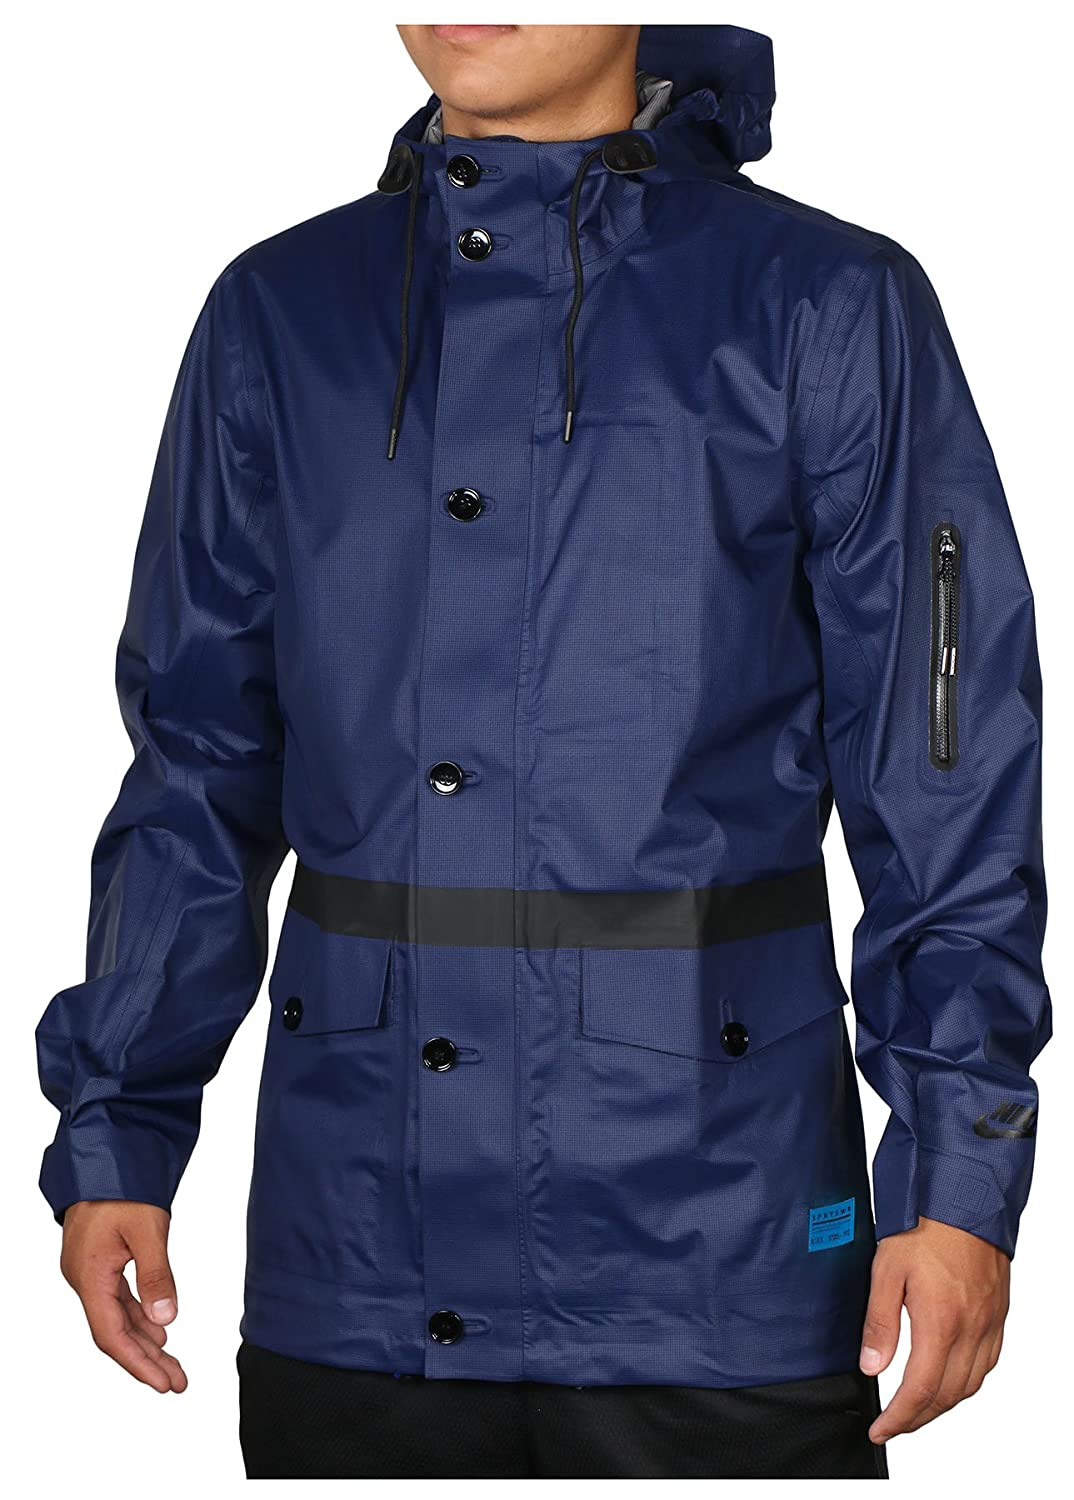 d60b69f3420f GREAT RAIN JACKET  Designed with water-repellent fabric and a perforated  storm vent in back